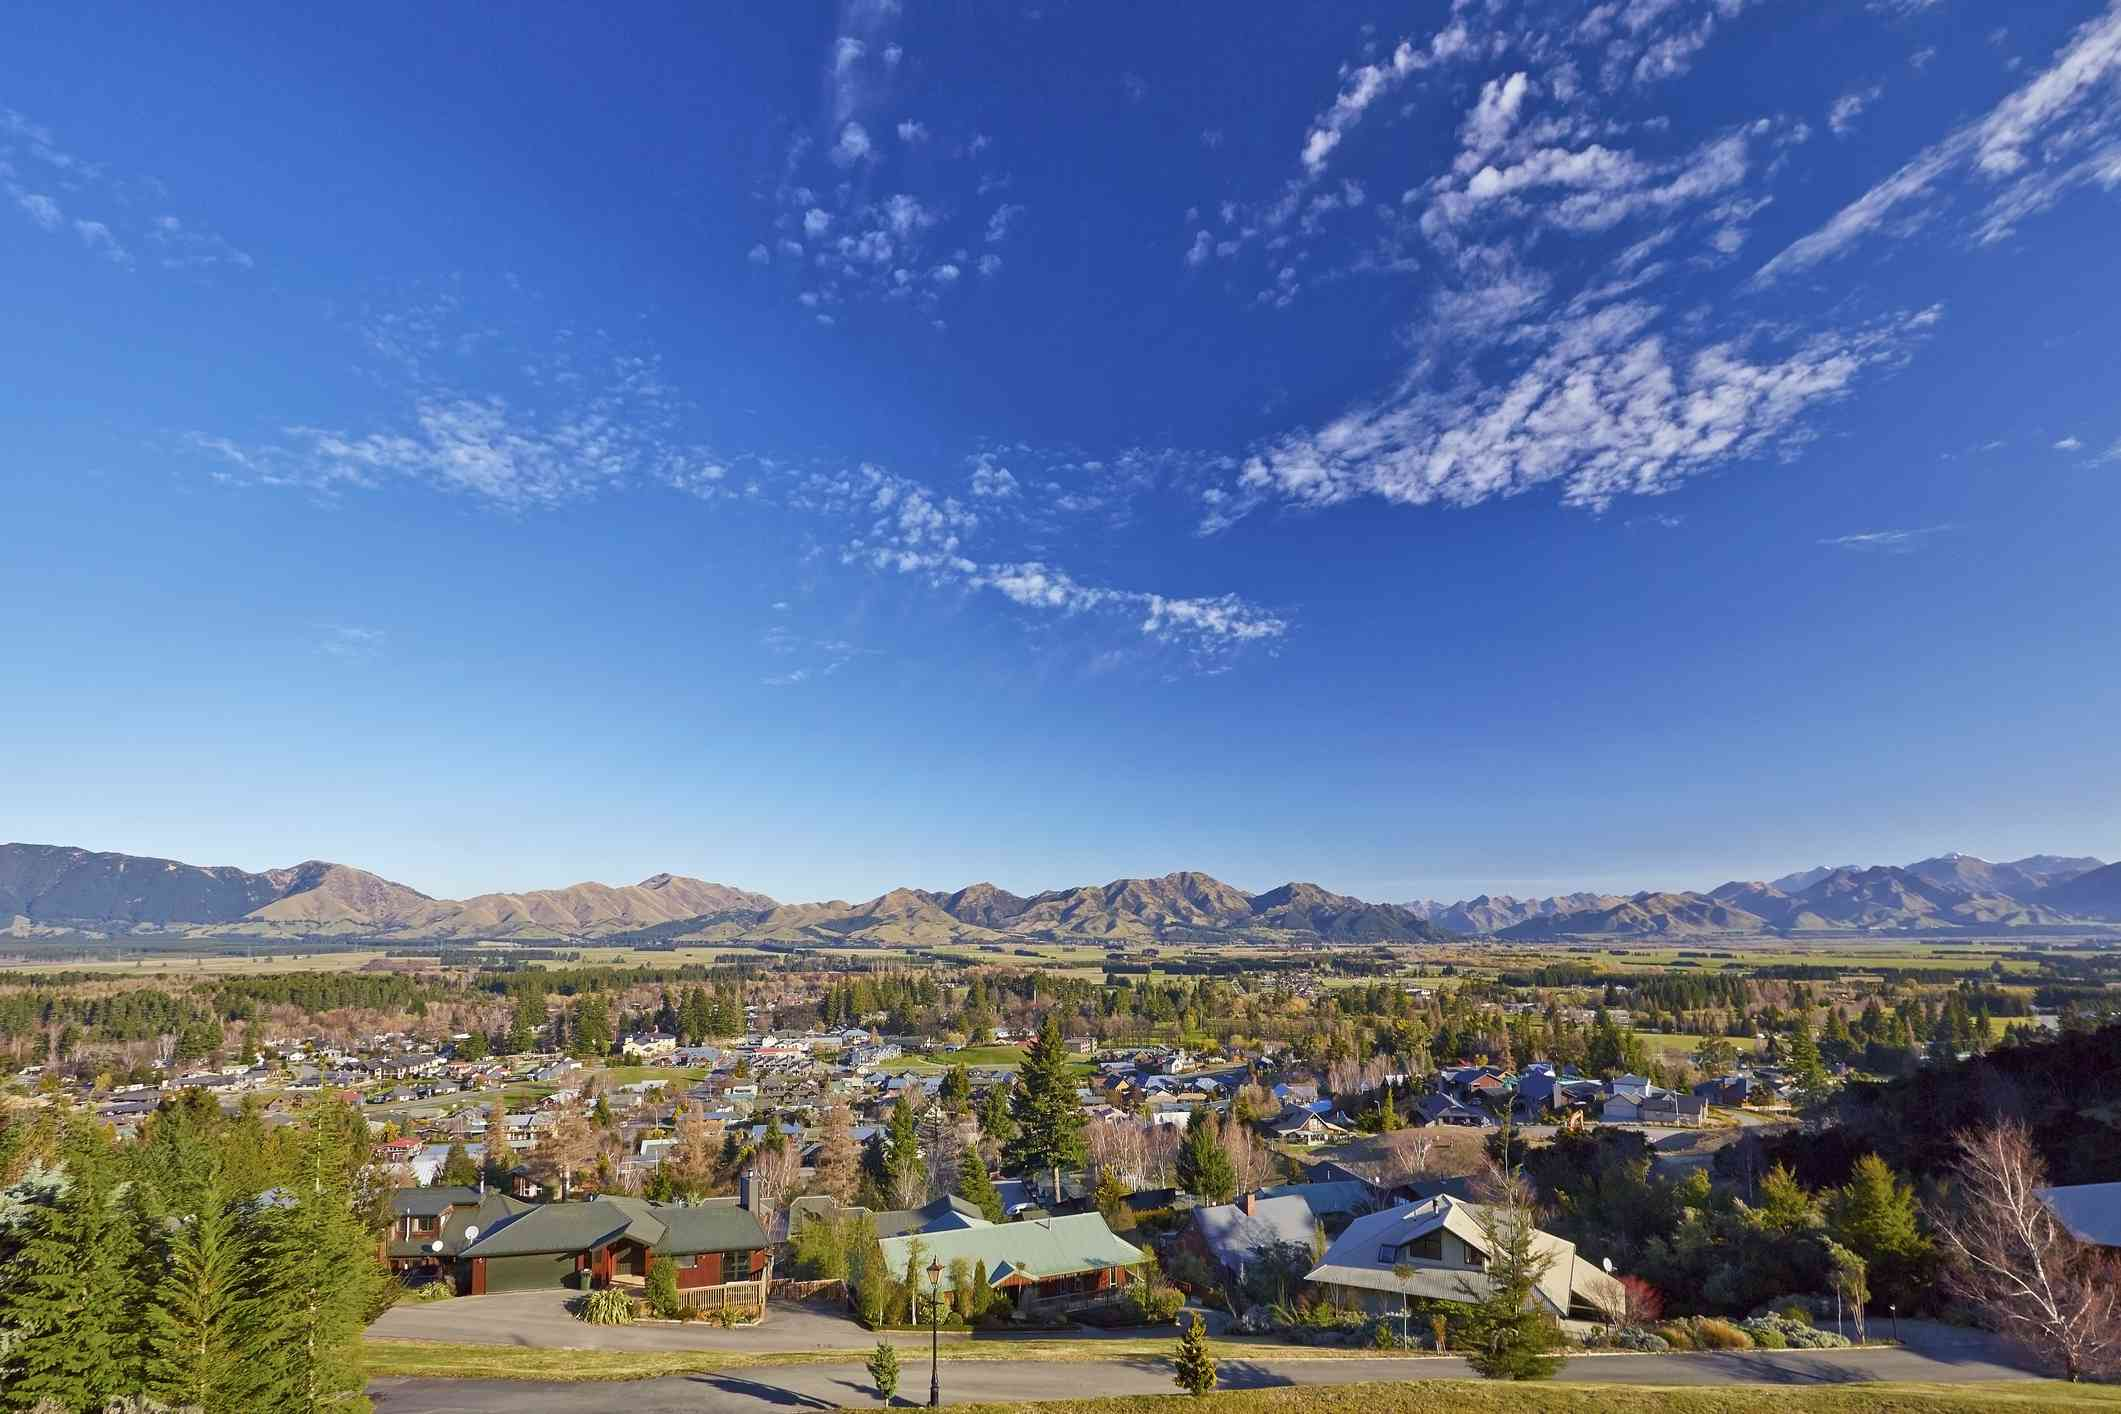 small town with mountains in background and blue sky